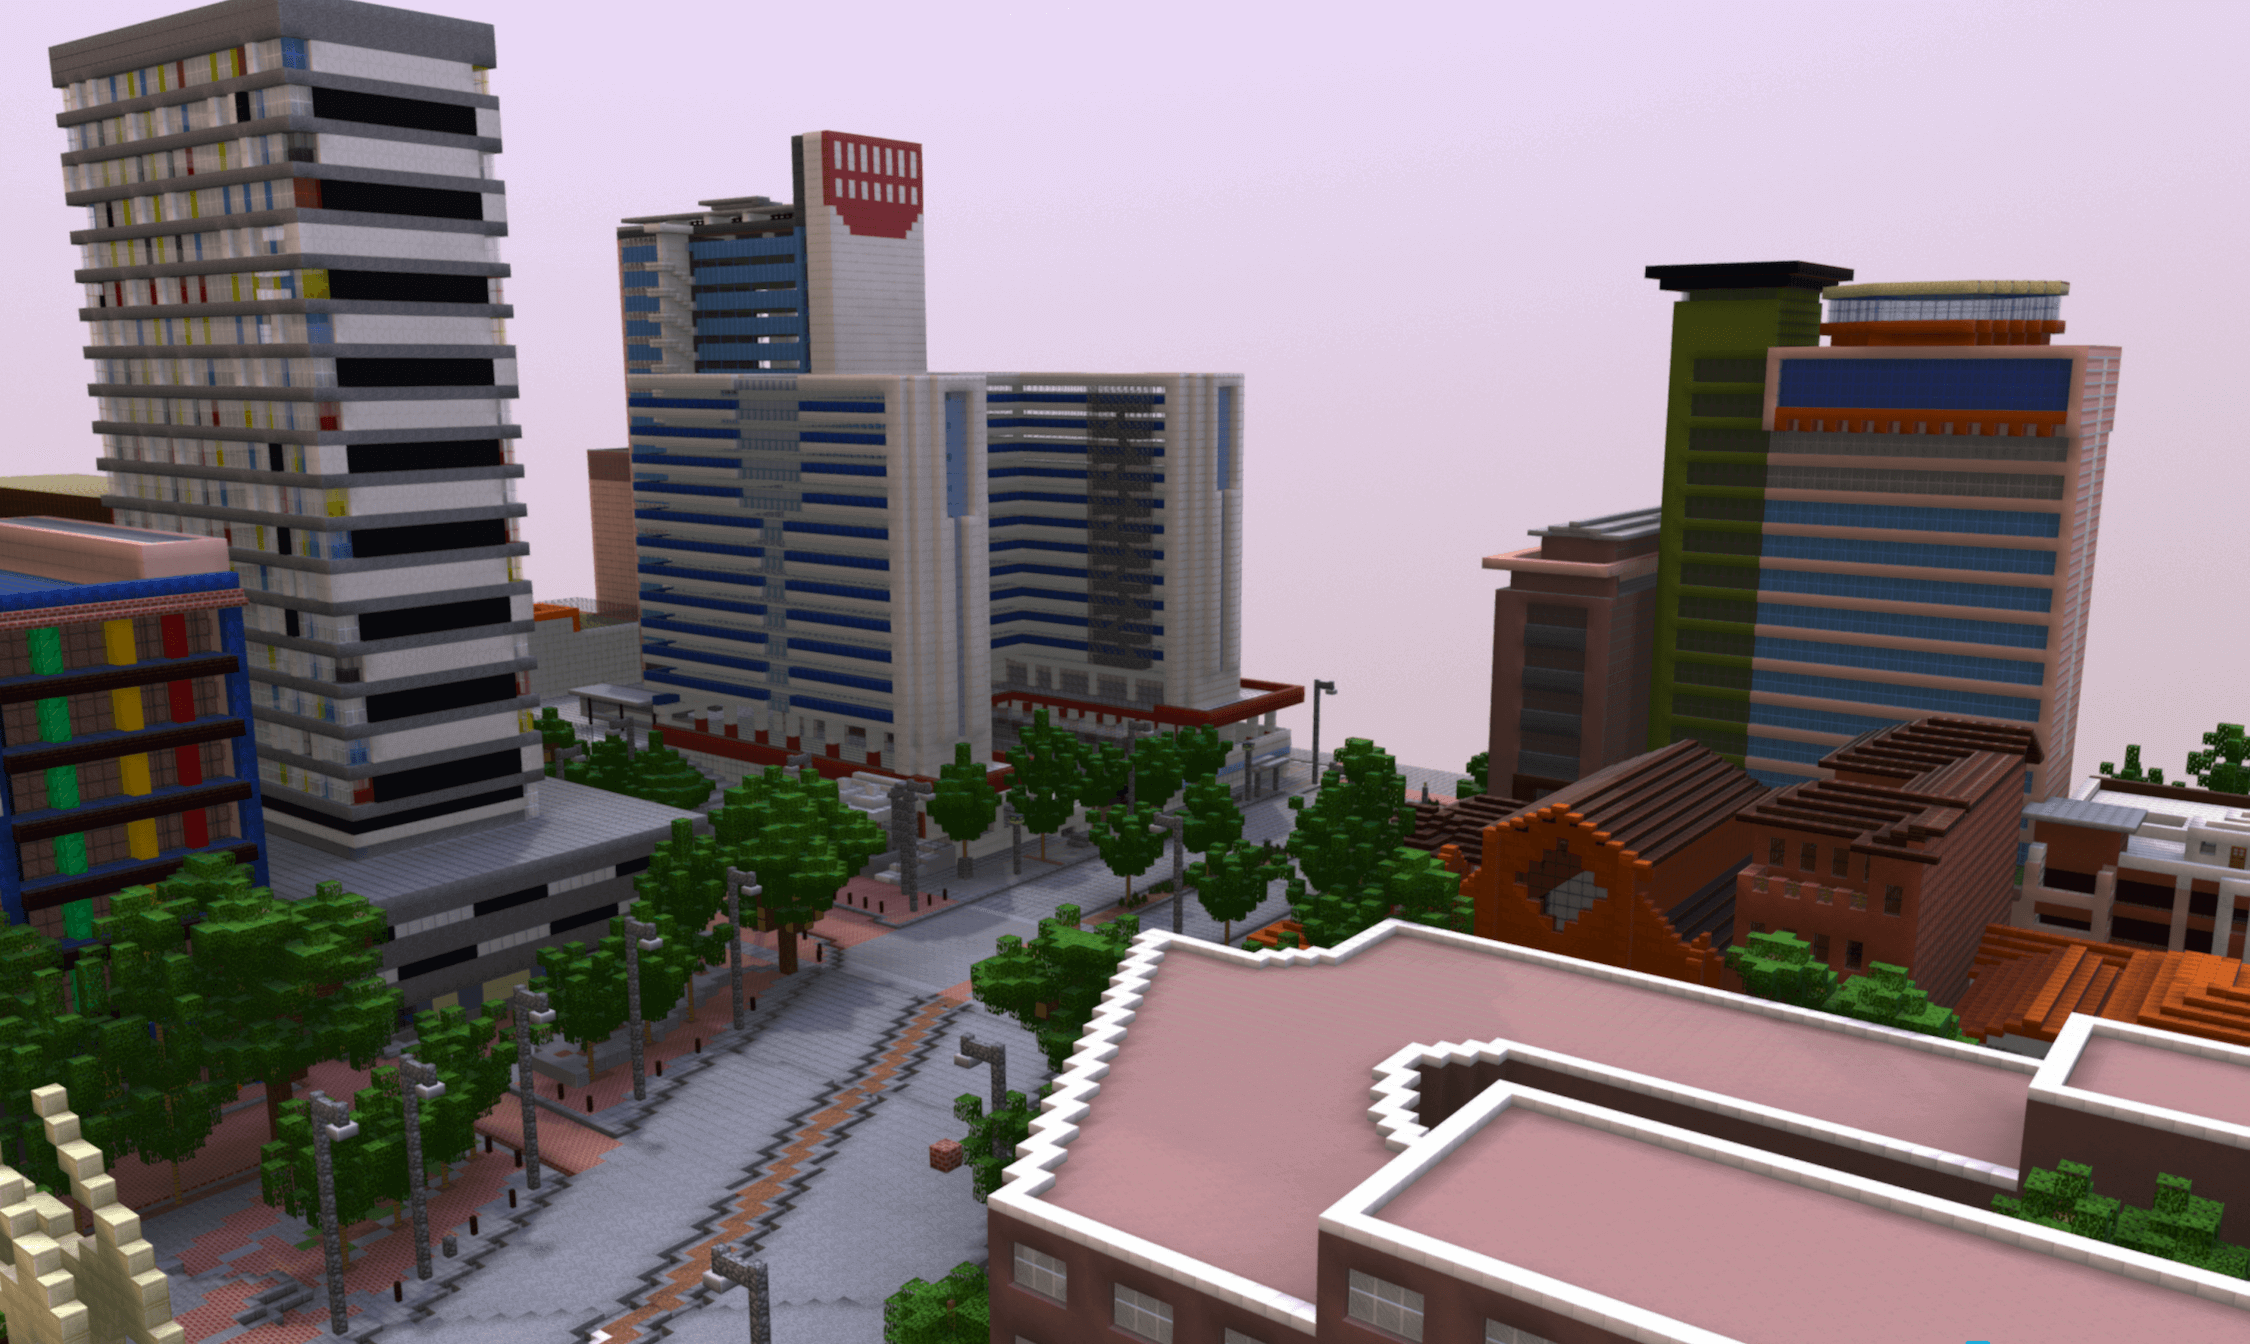 3D Minecraft Model of Community-Designed Public Space, Johannesburg